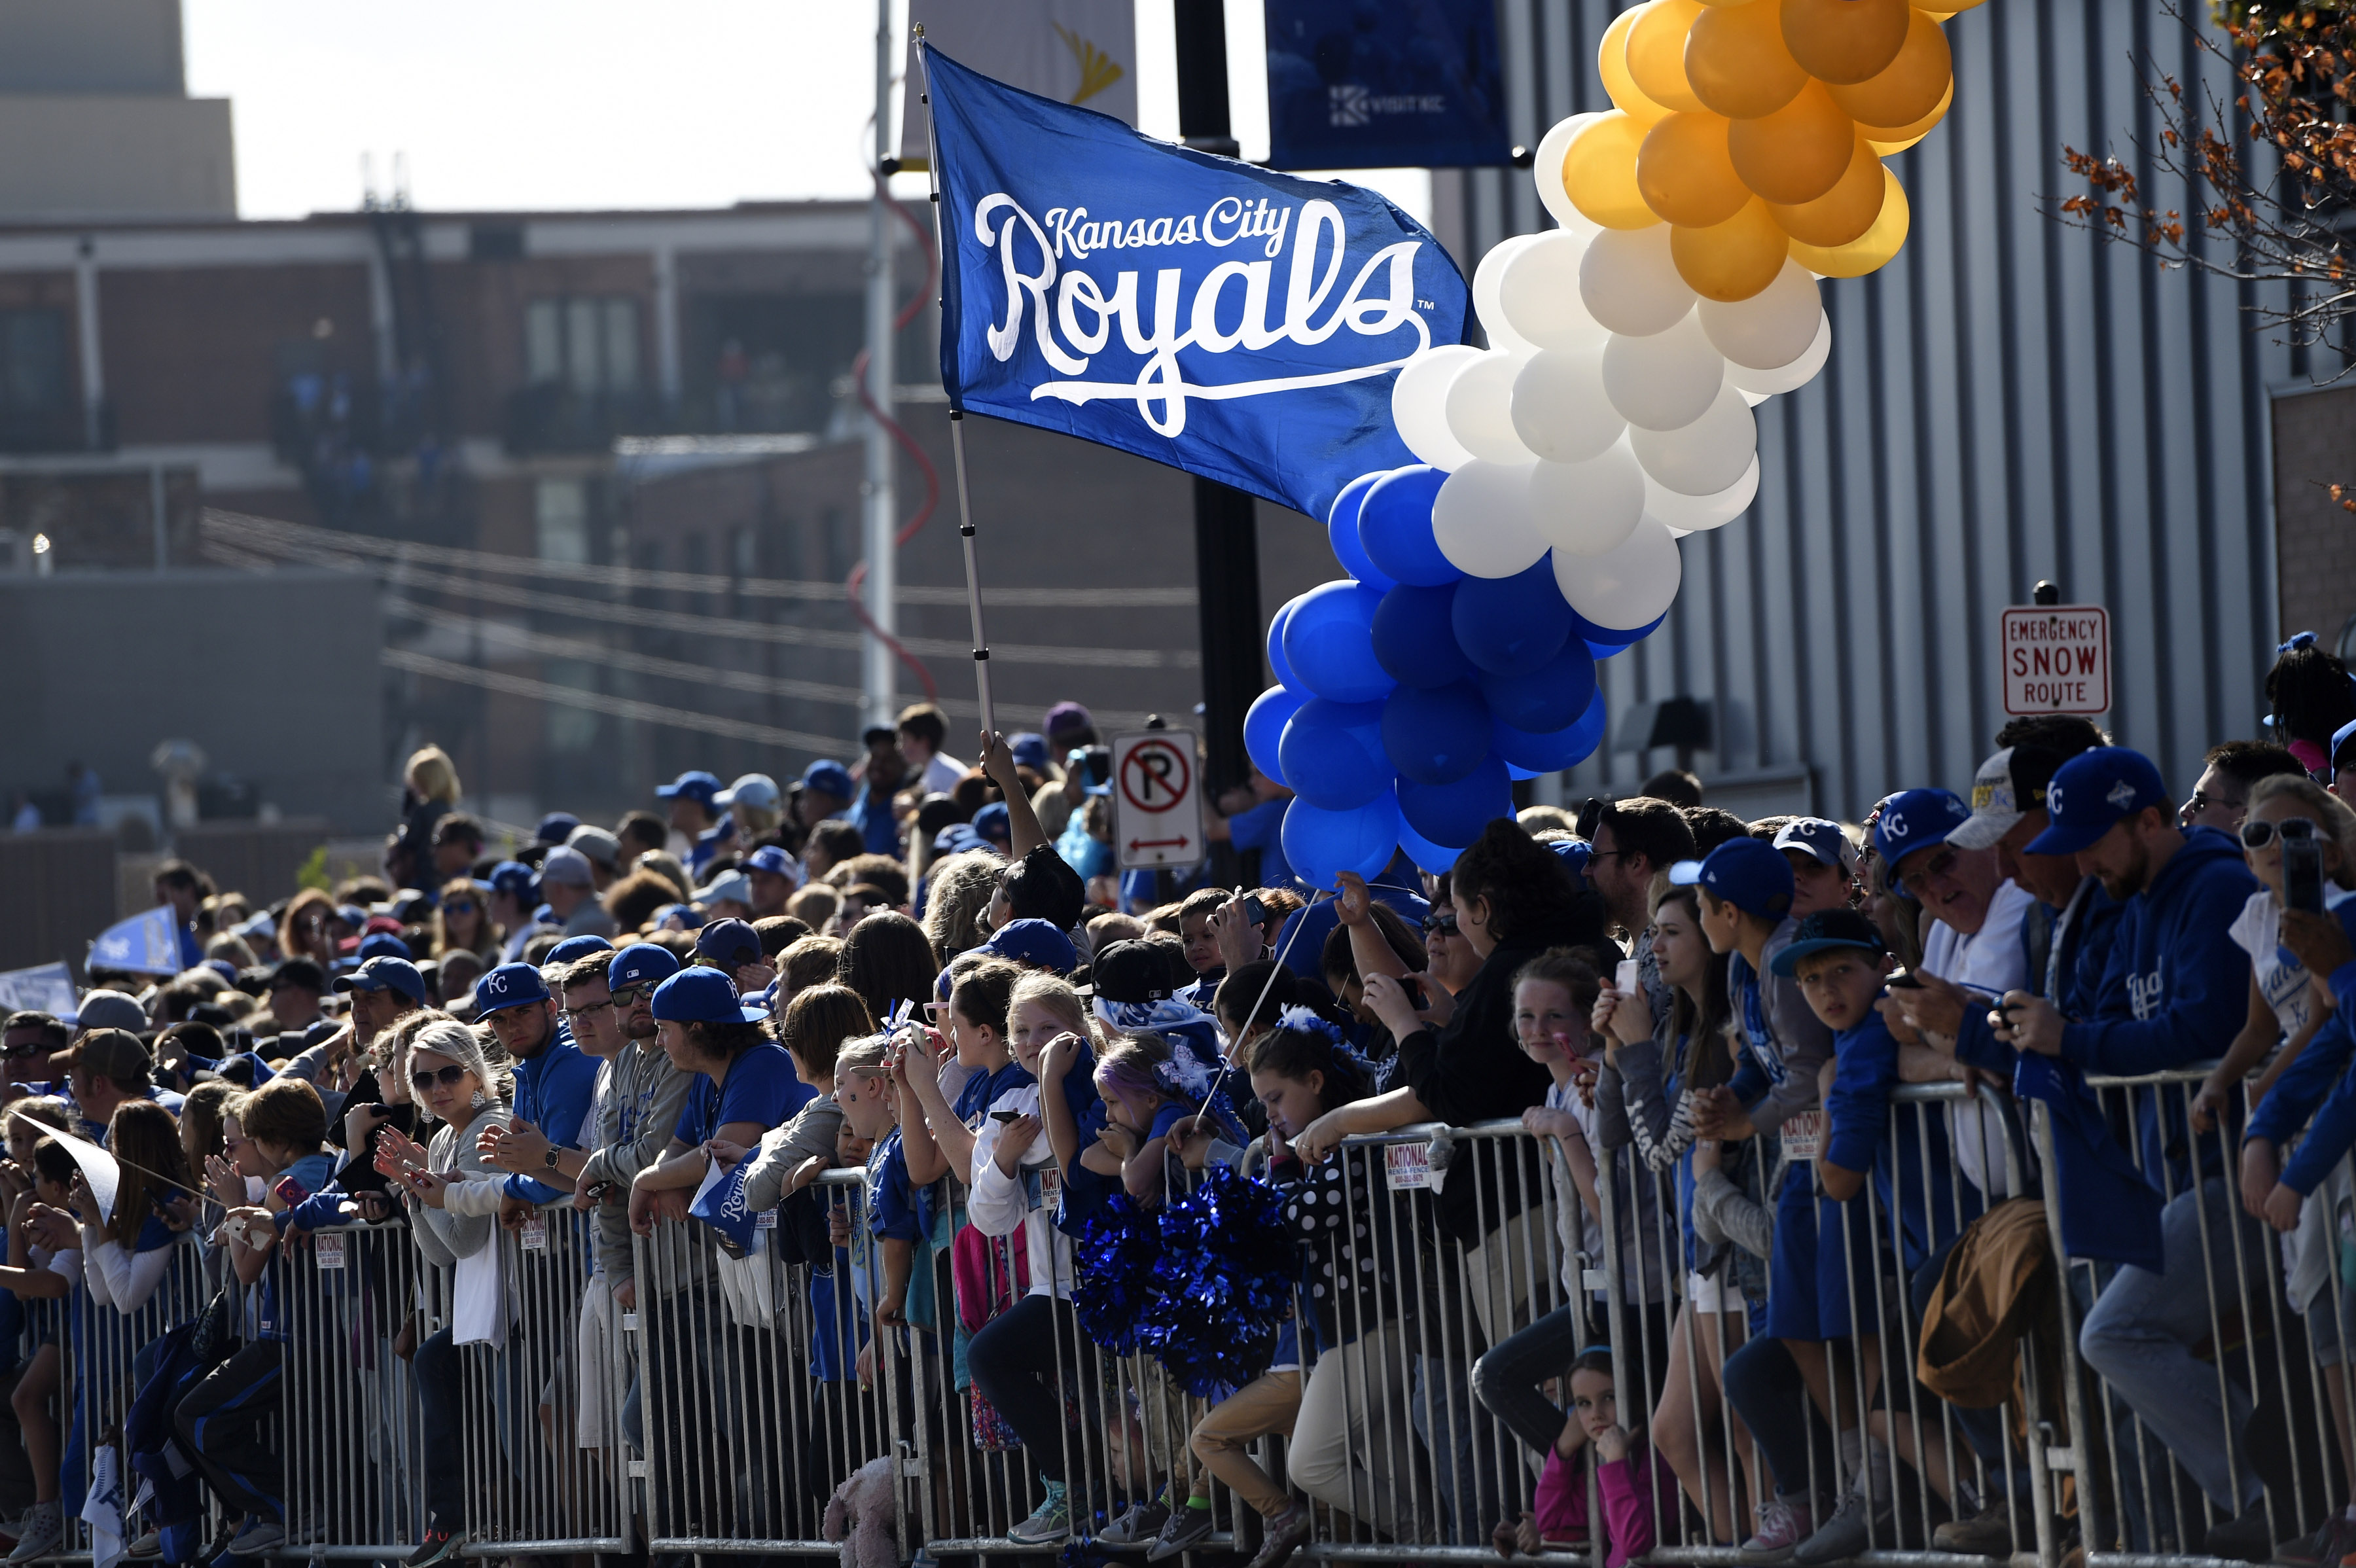 Fans line a street waiting for the parade for the Kansas City Royals, honoring the teams first baseball World Series trophy in 30 years, Tuesday, Nov. 3, 2015 in Kansas City.  (Shane Keyser /The Kansas City Star via AP) MANDATORY CREDIT